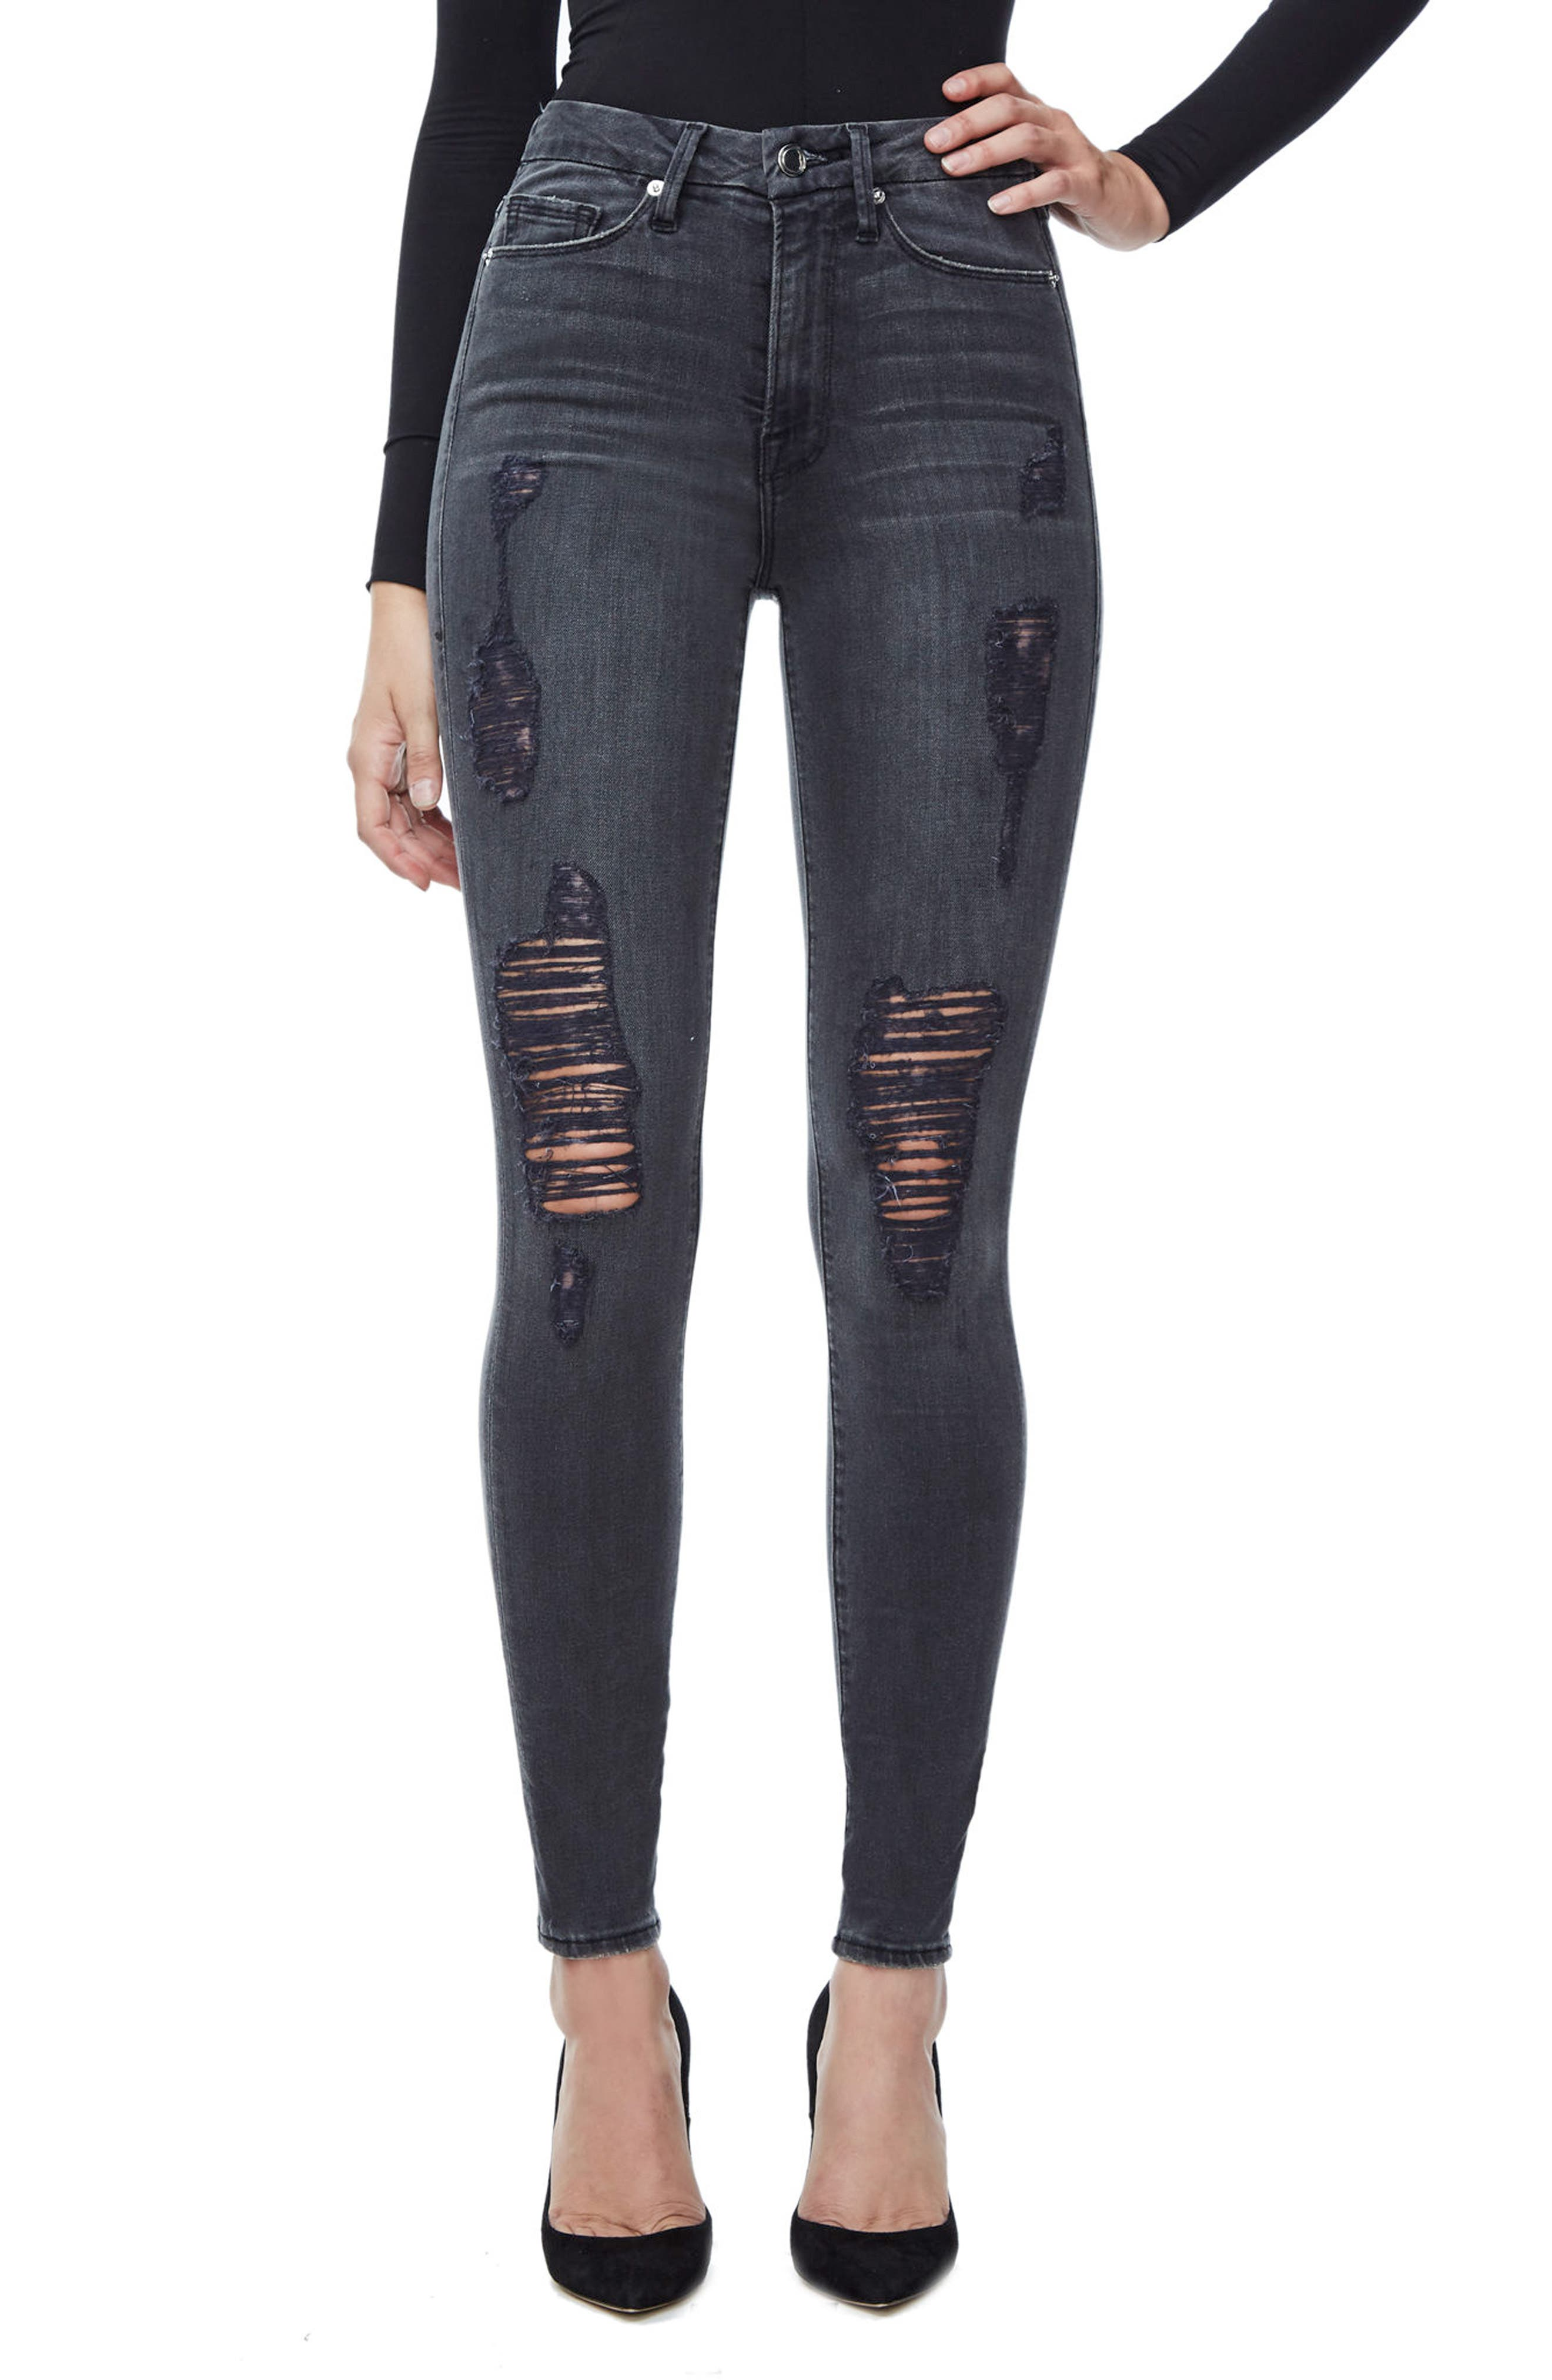 We Tested 24 Pairs Of Affordable Skinny Jeans And These Are The Best We tested 24 pairs of jeans from Old Navy, H&M, Forever 21, Target, and American Eagle to find out which brand's pants are.